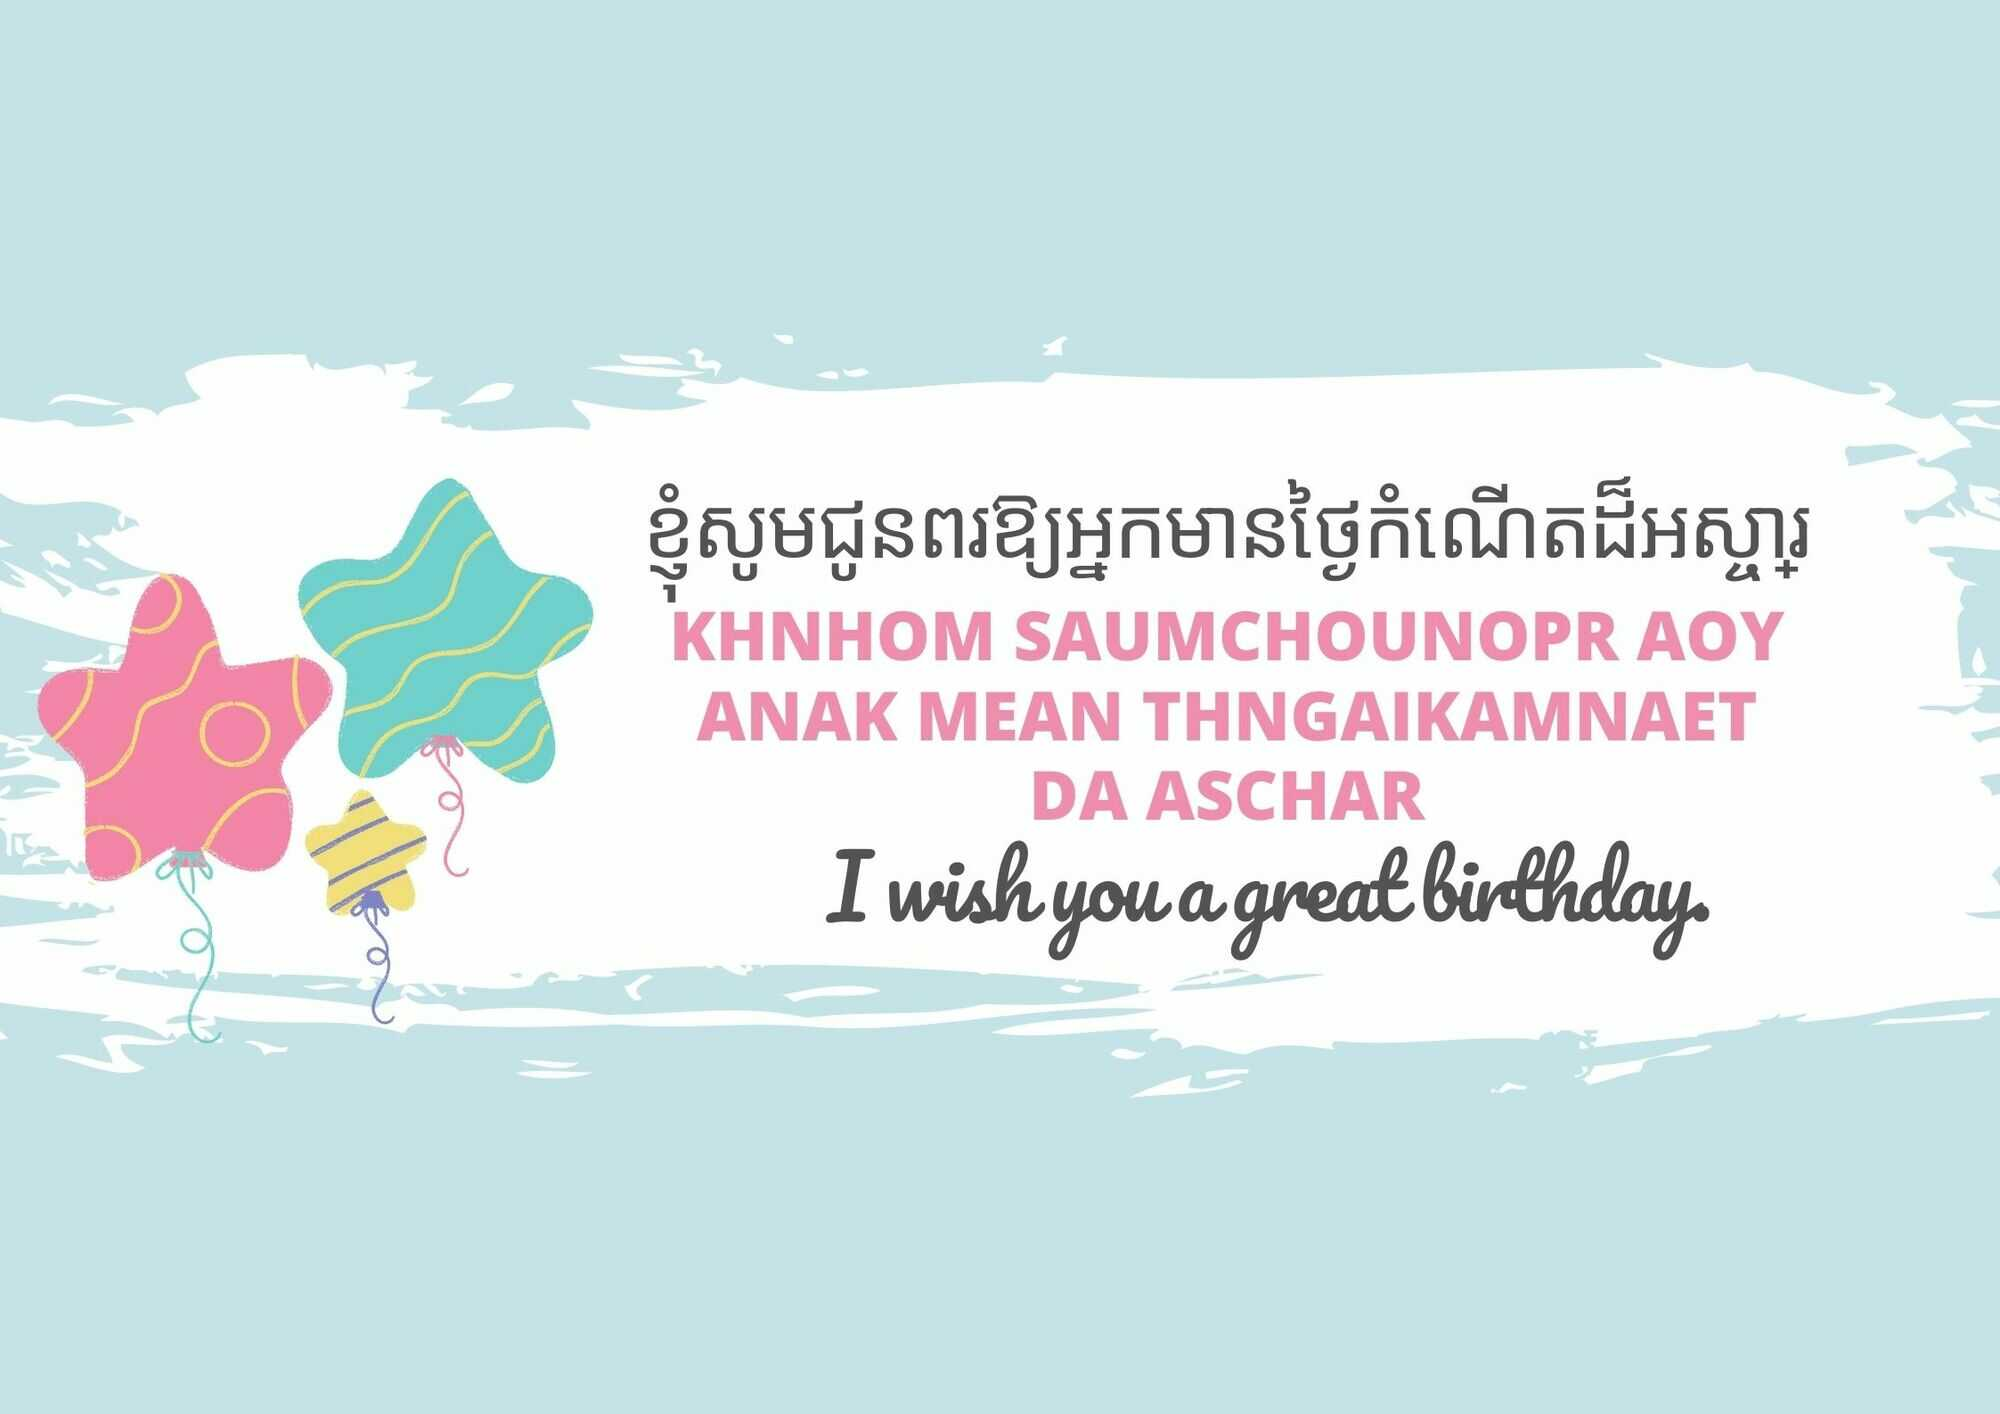 I wish you a great birthday in English.